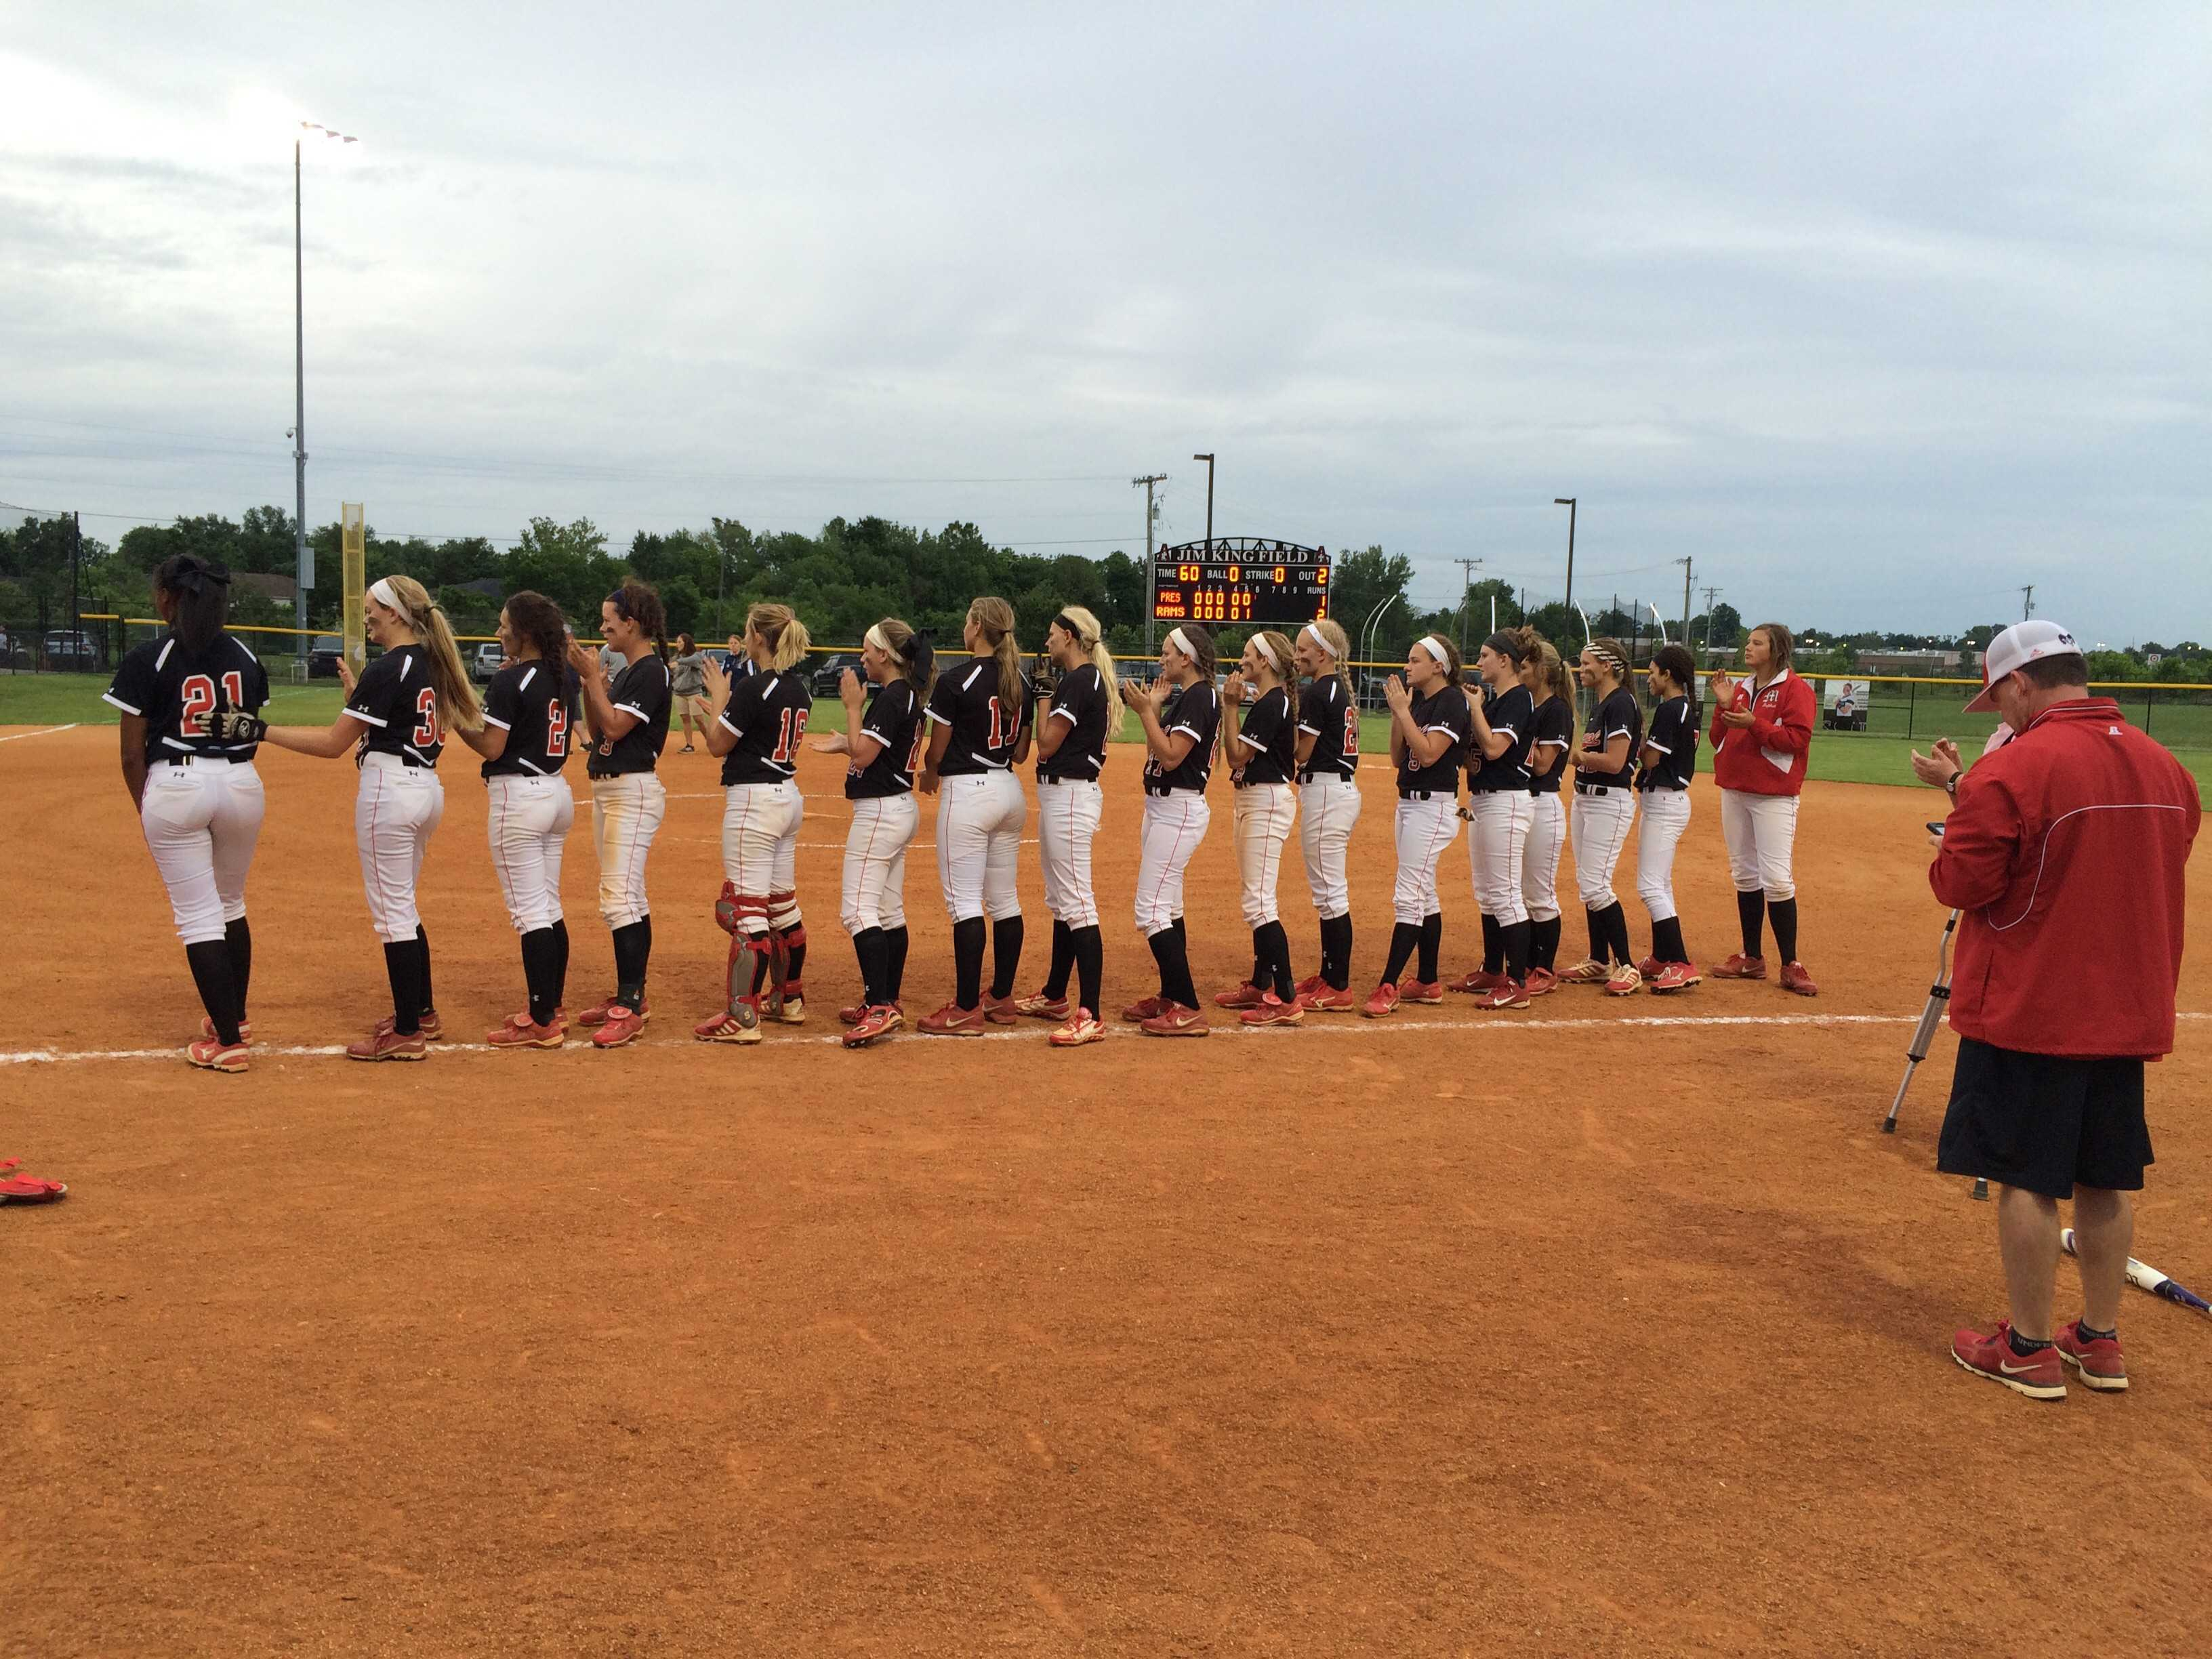 The duPont Manual softball team lines up after the game to be honored as the 25th District champions. Photo by RJ Radcliffe